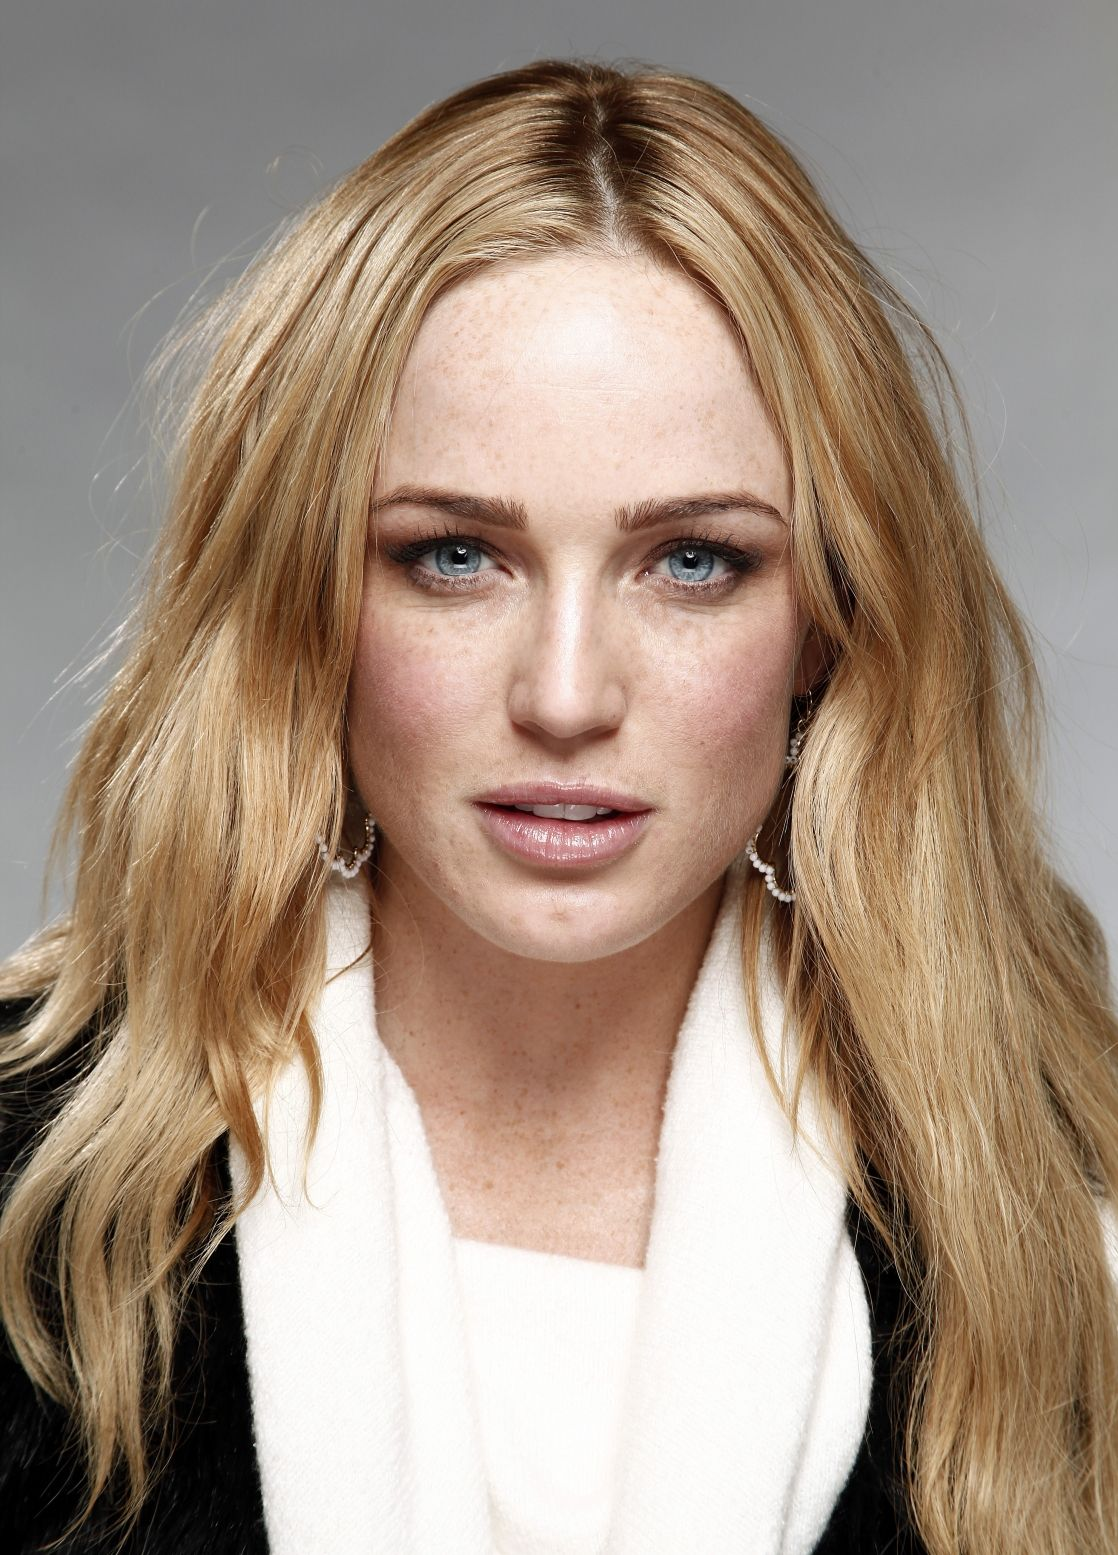 Images Caity Lotz nude (72 photo), Sexy, Cleavage, Boobs, panties 2015